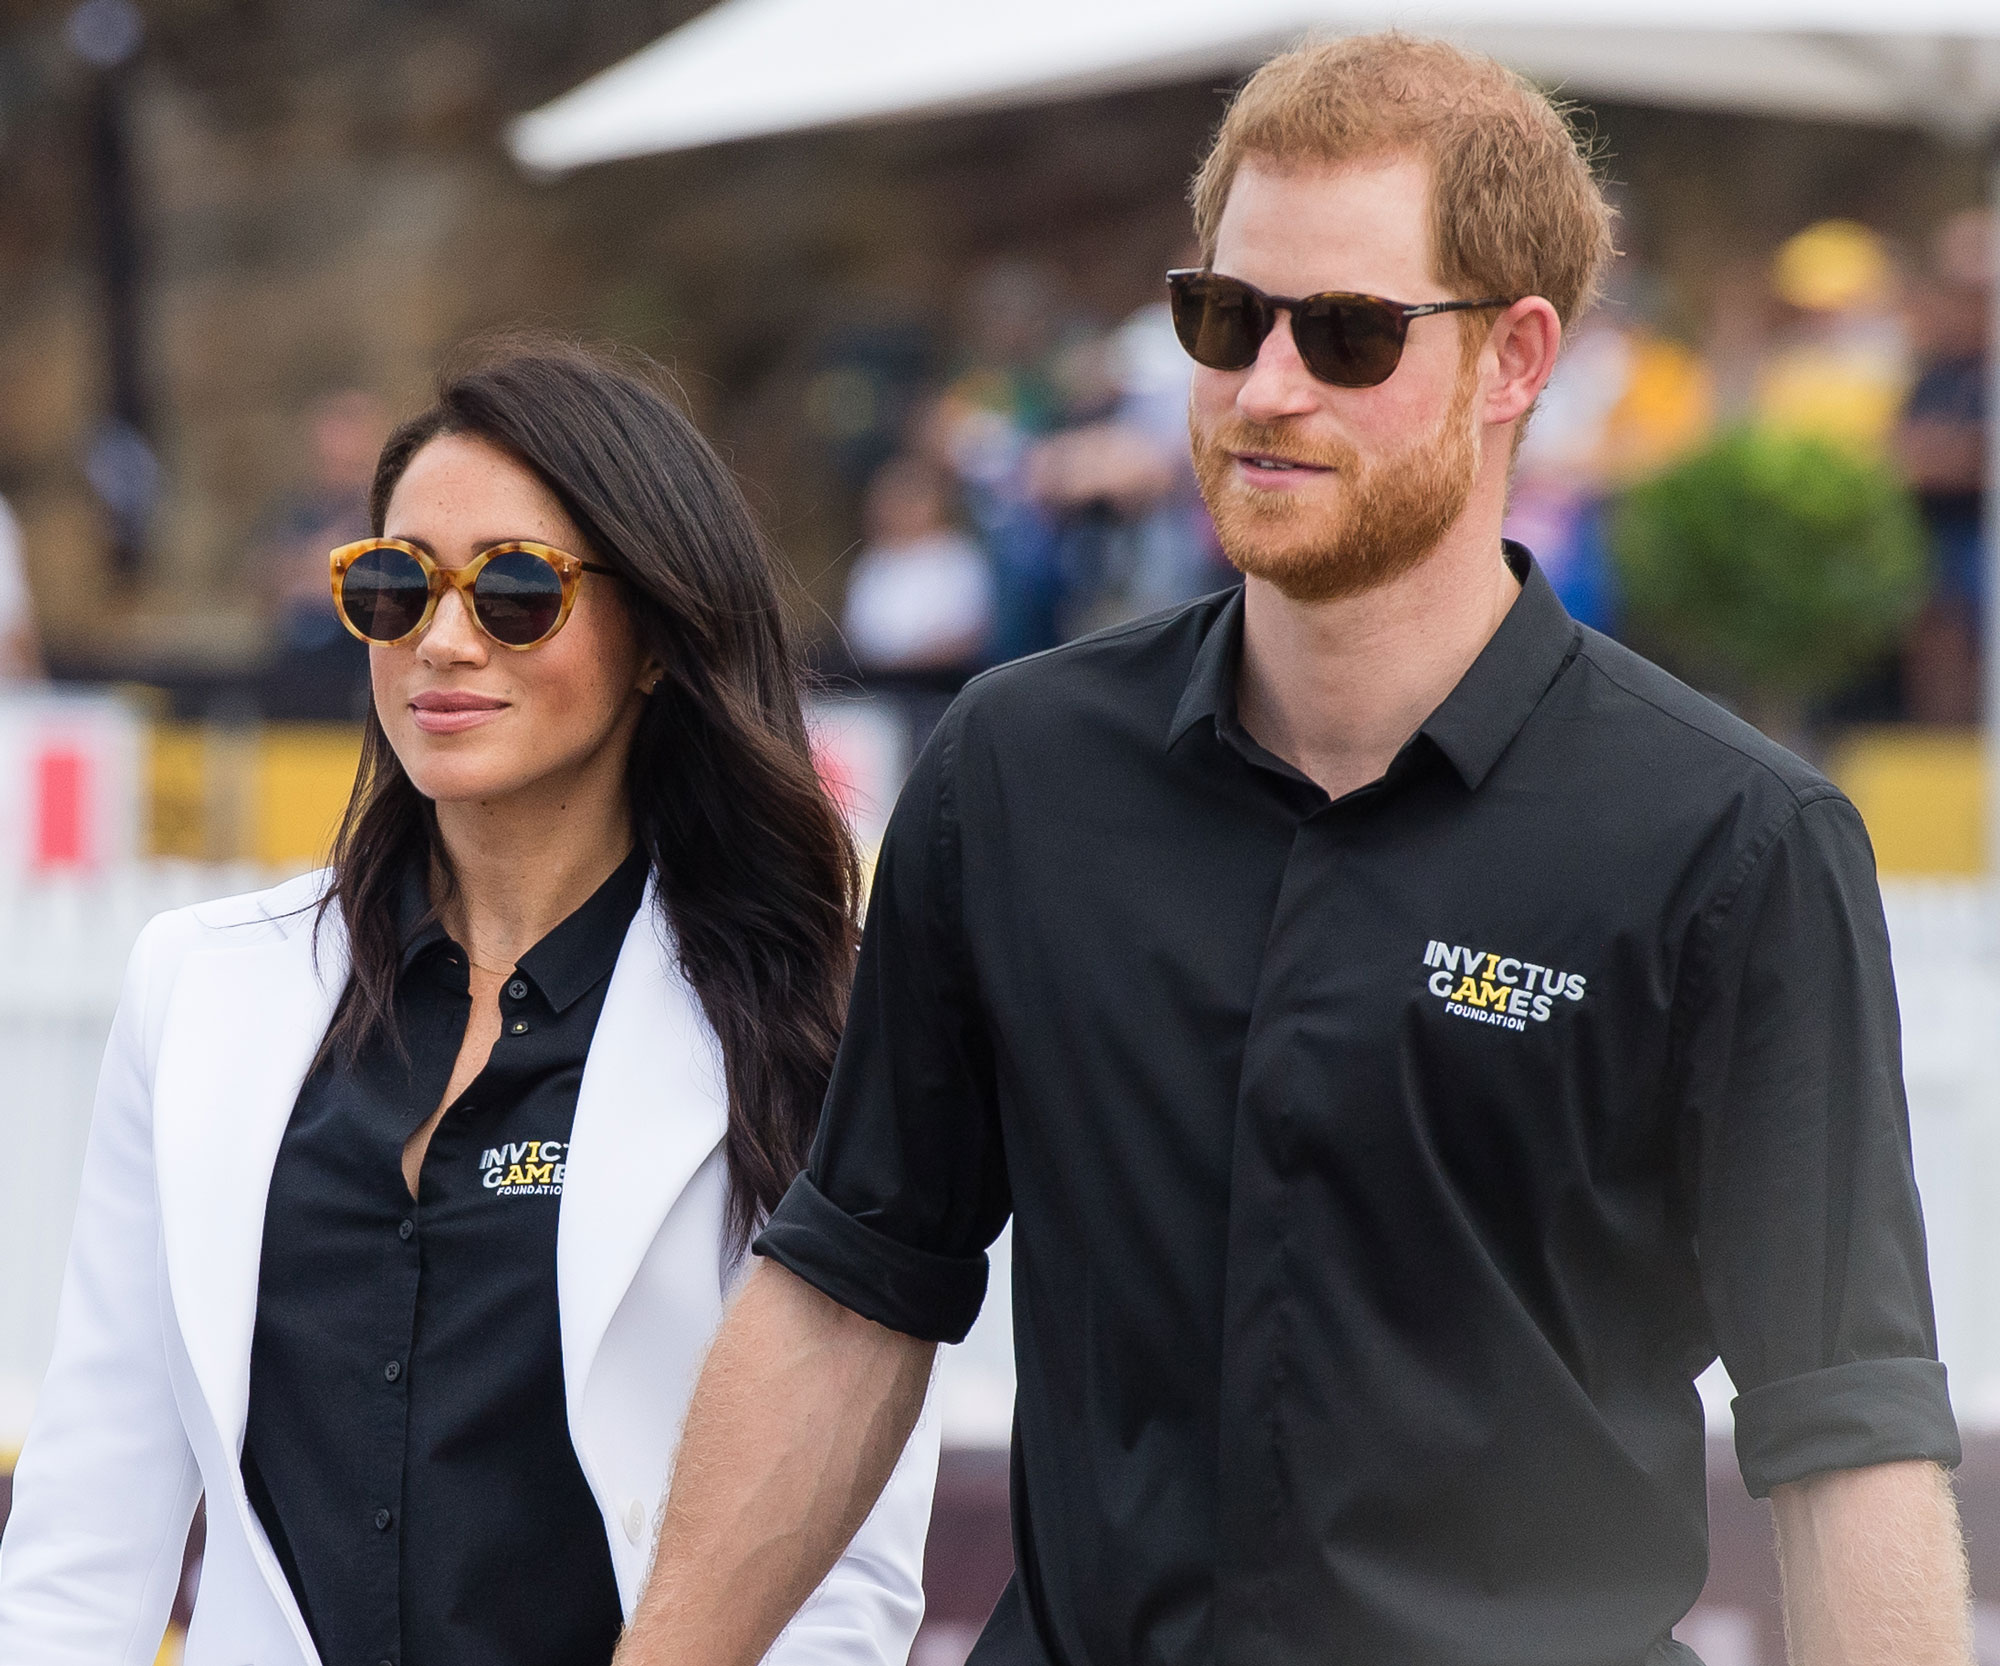 Meghan Markle Is Cutting Back Her Royal Tour Schedule